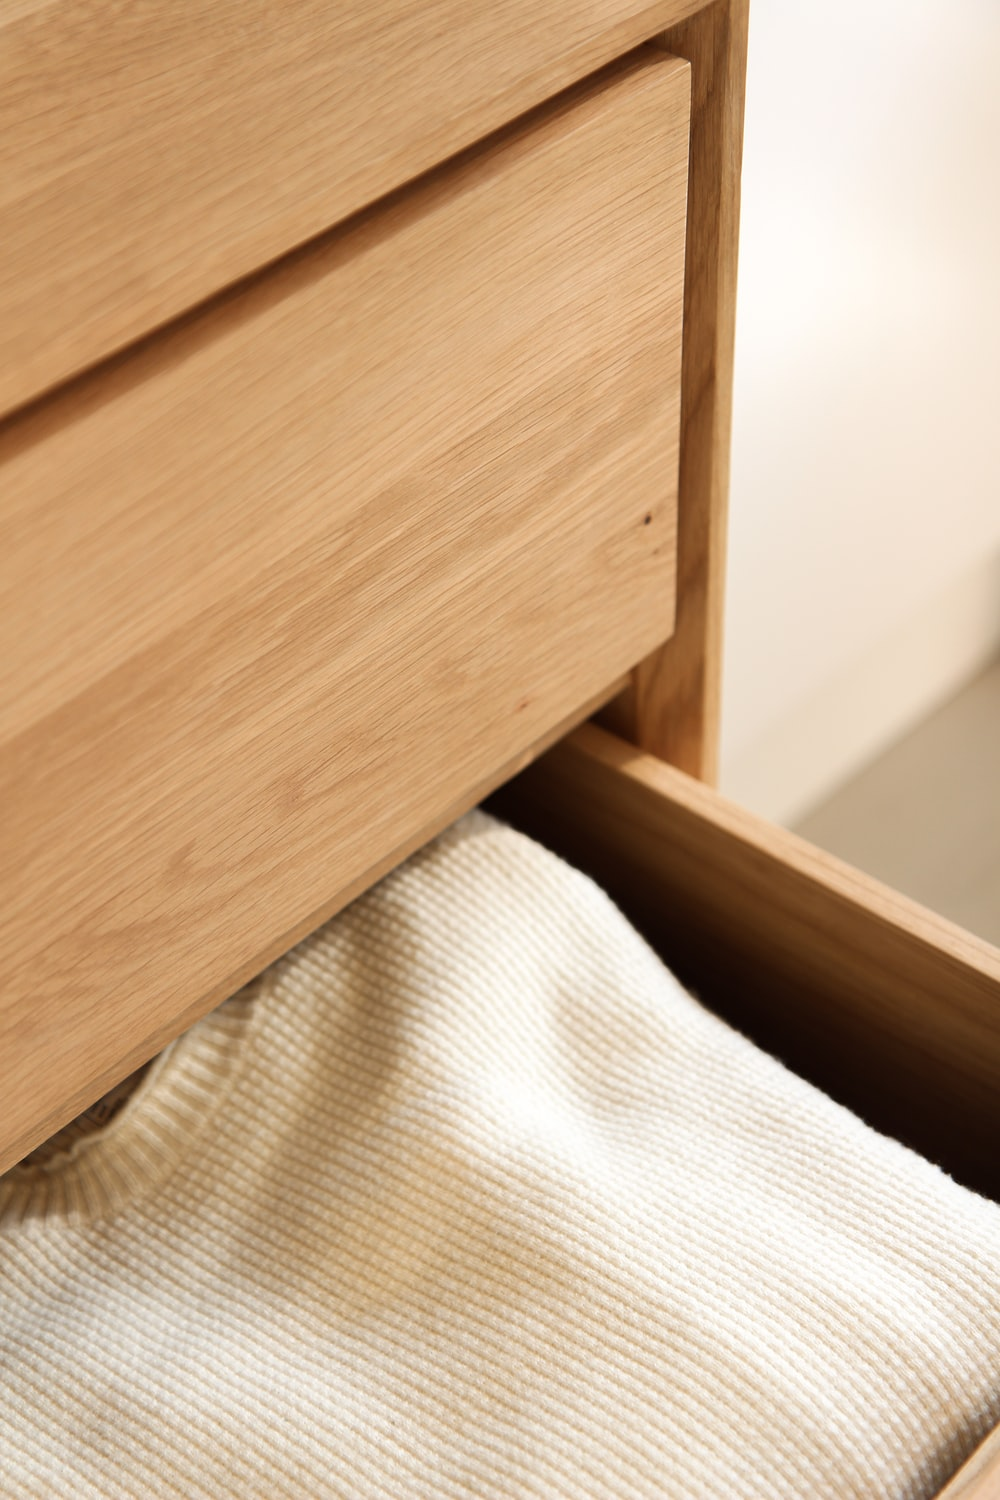 white textile beside brown wooden drawer